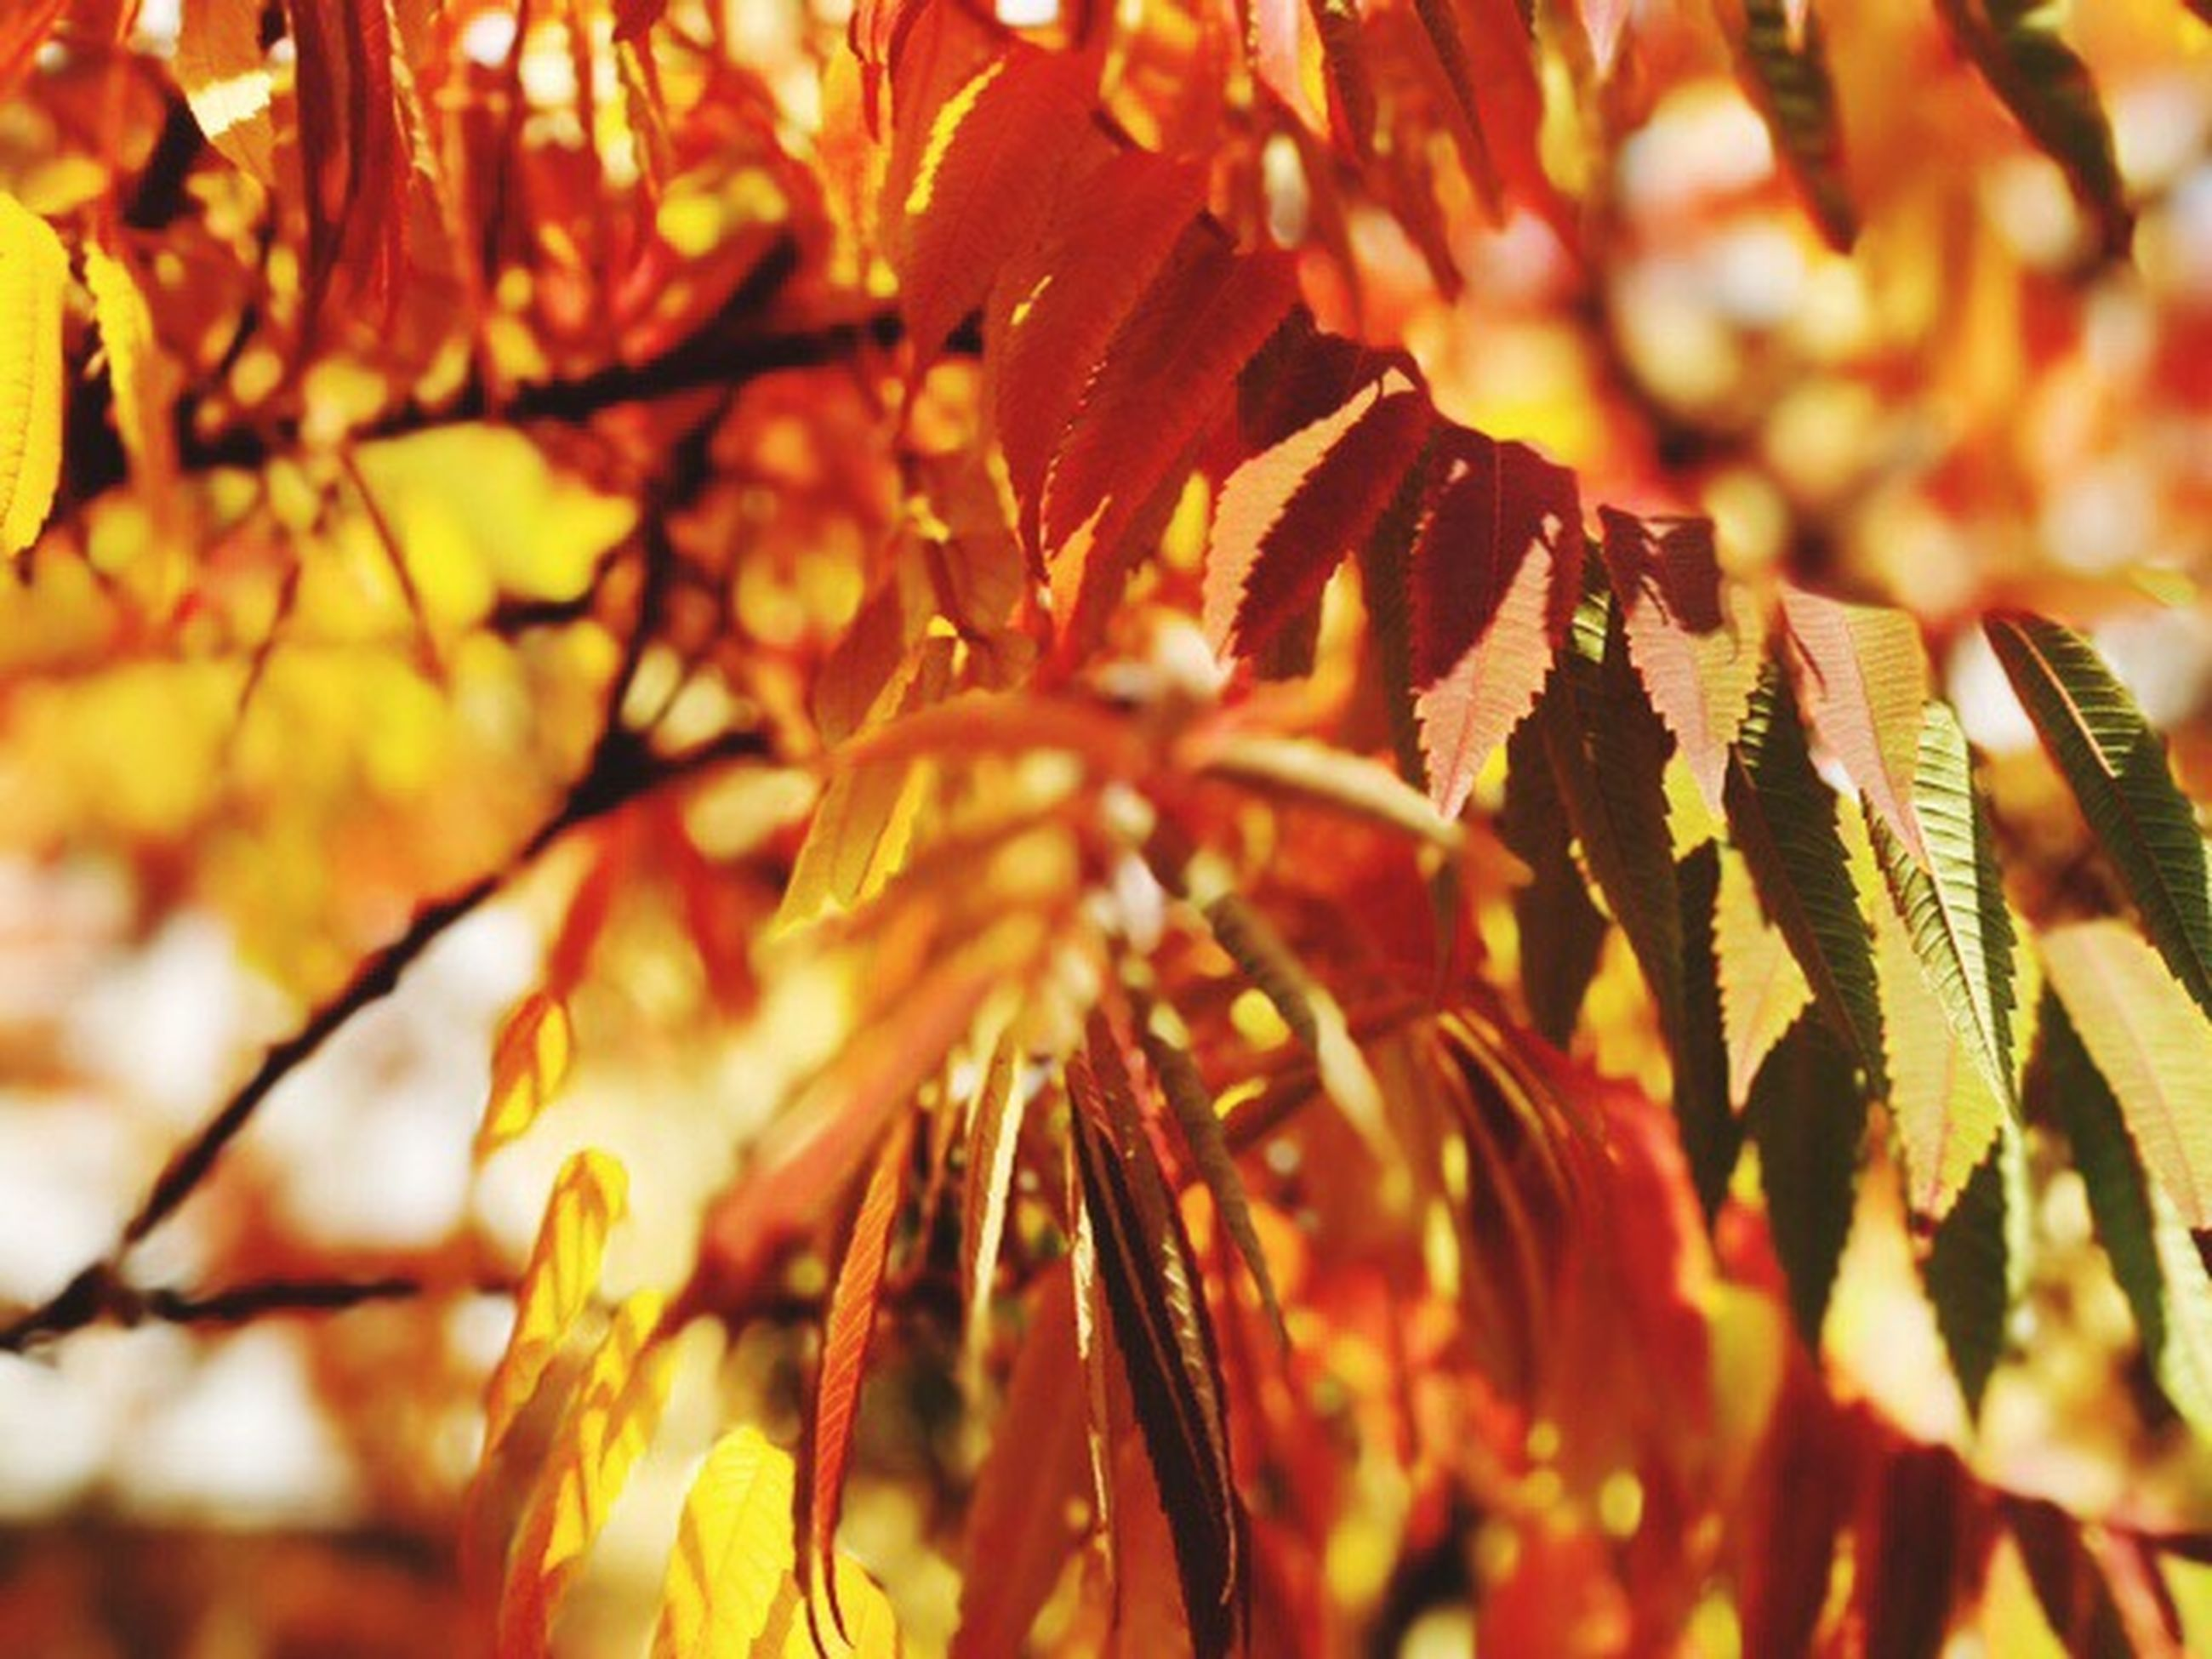 leaf, nature, autumn, growth, beauty in nature, close-up, change, tree, no people, orange color, plant, outdoors, day, leaves, branch, maple leaf, freshness